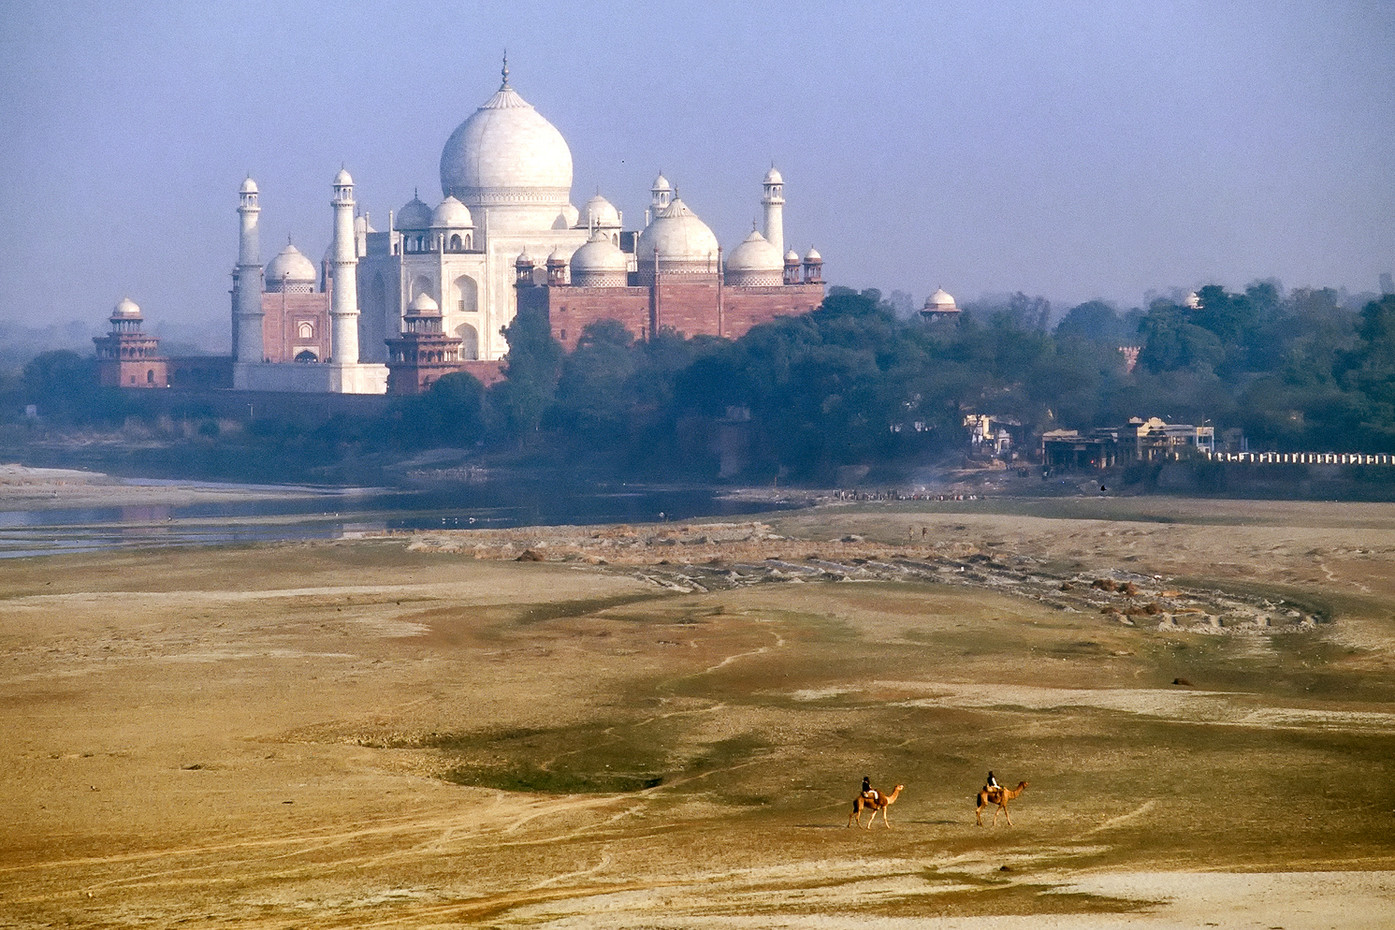 Camels in front of the Taj Mahal in Agra, Ind